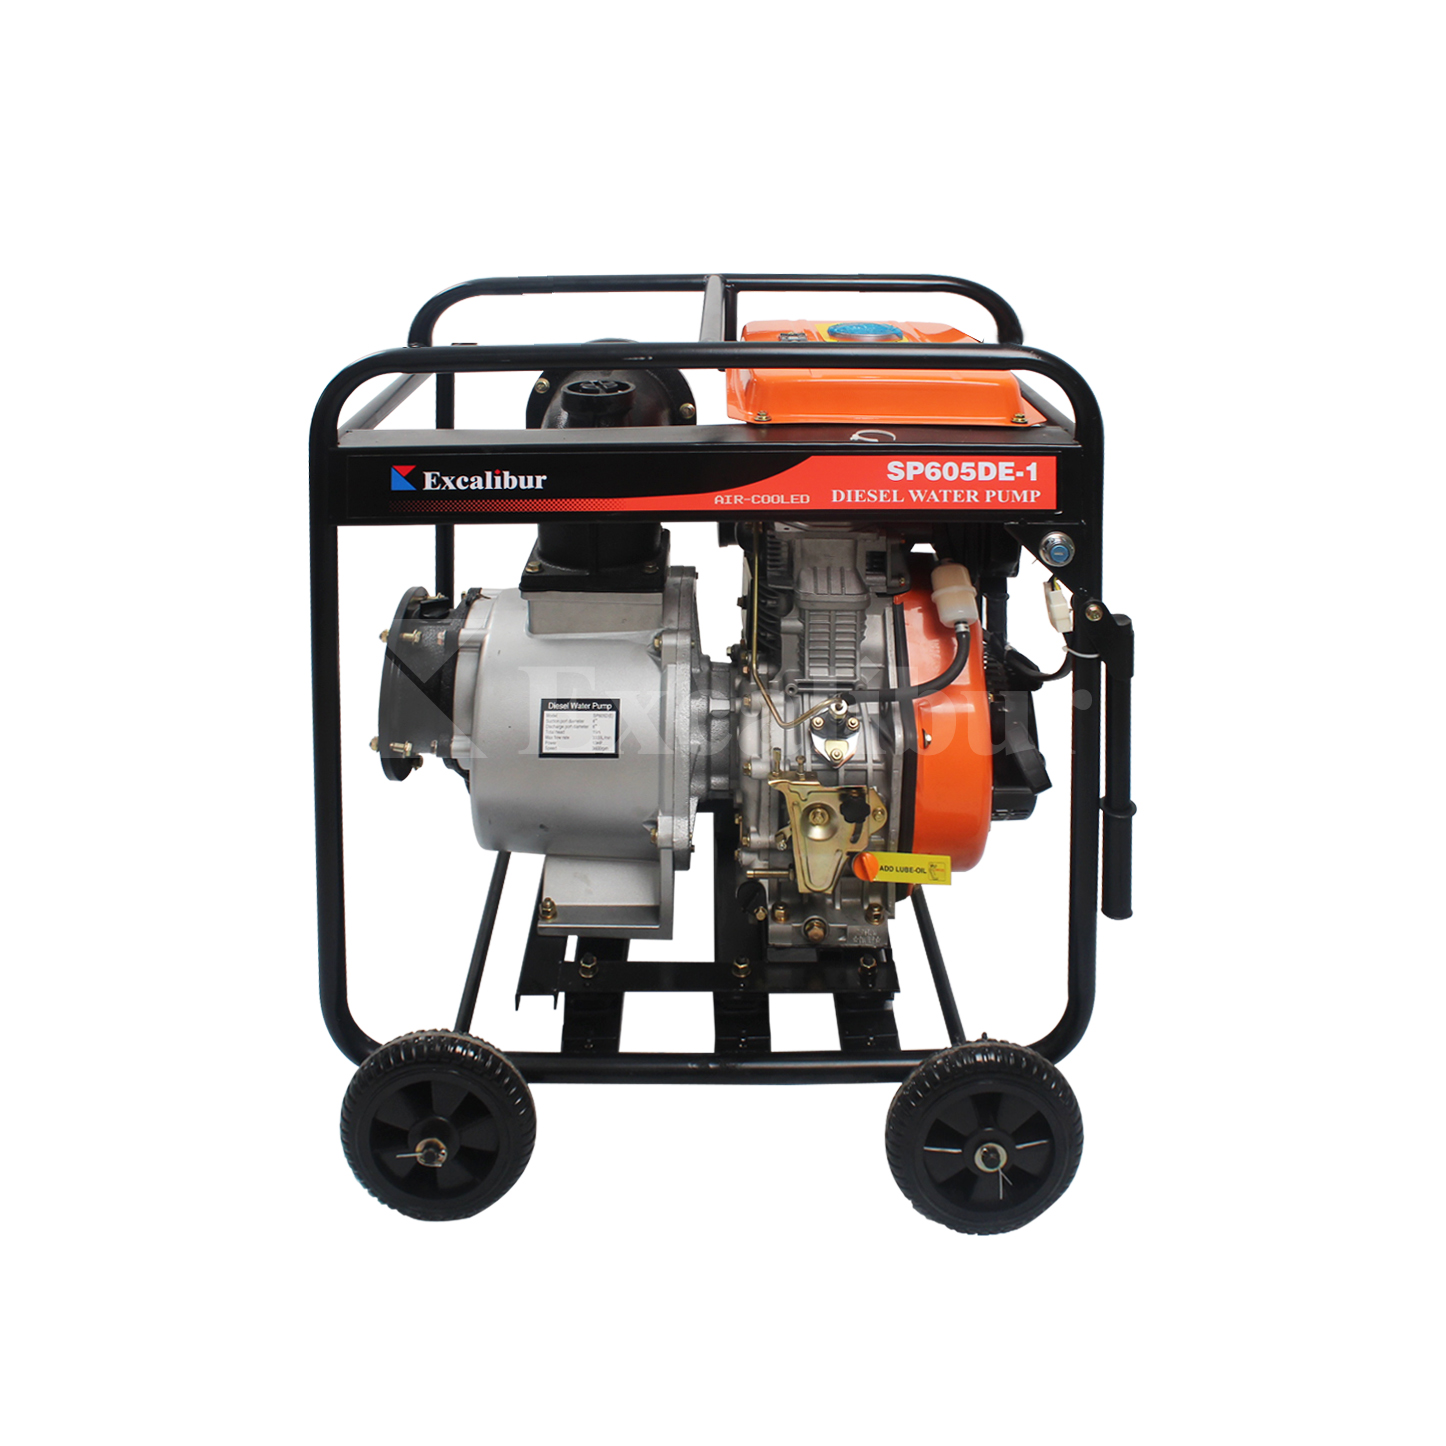 6″ Diesel Clear Water Pump SP605DE-1 with big fuel tank big trolley wheels